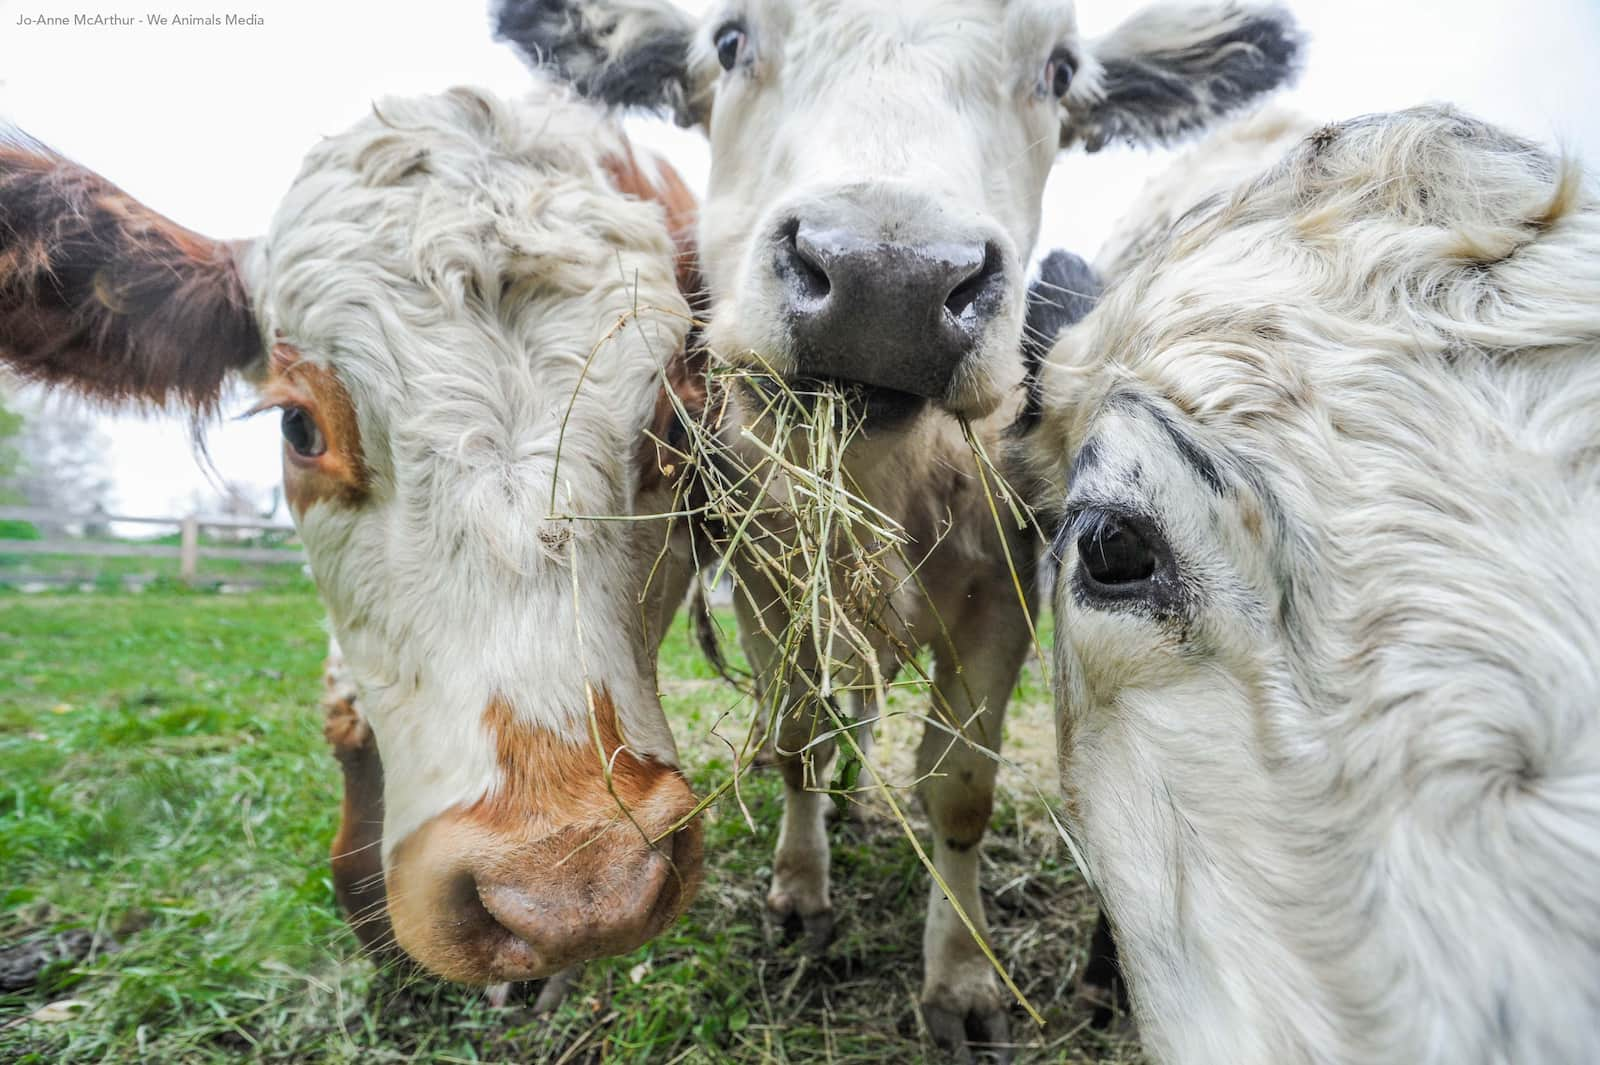 Close up photo of three cows eating. Photo by Jo-Anne McArthur from We Animals Media.